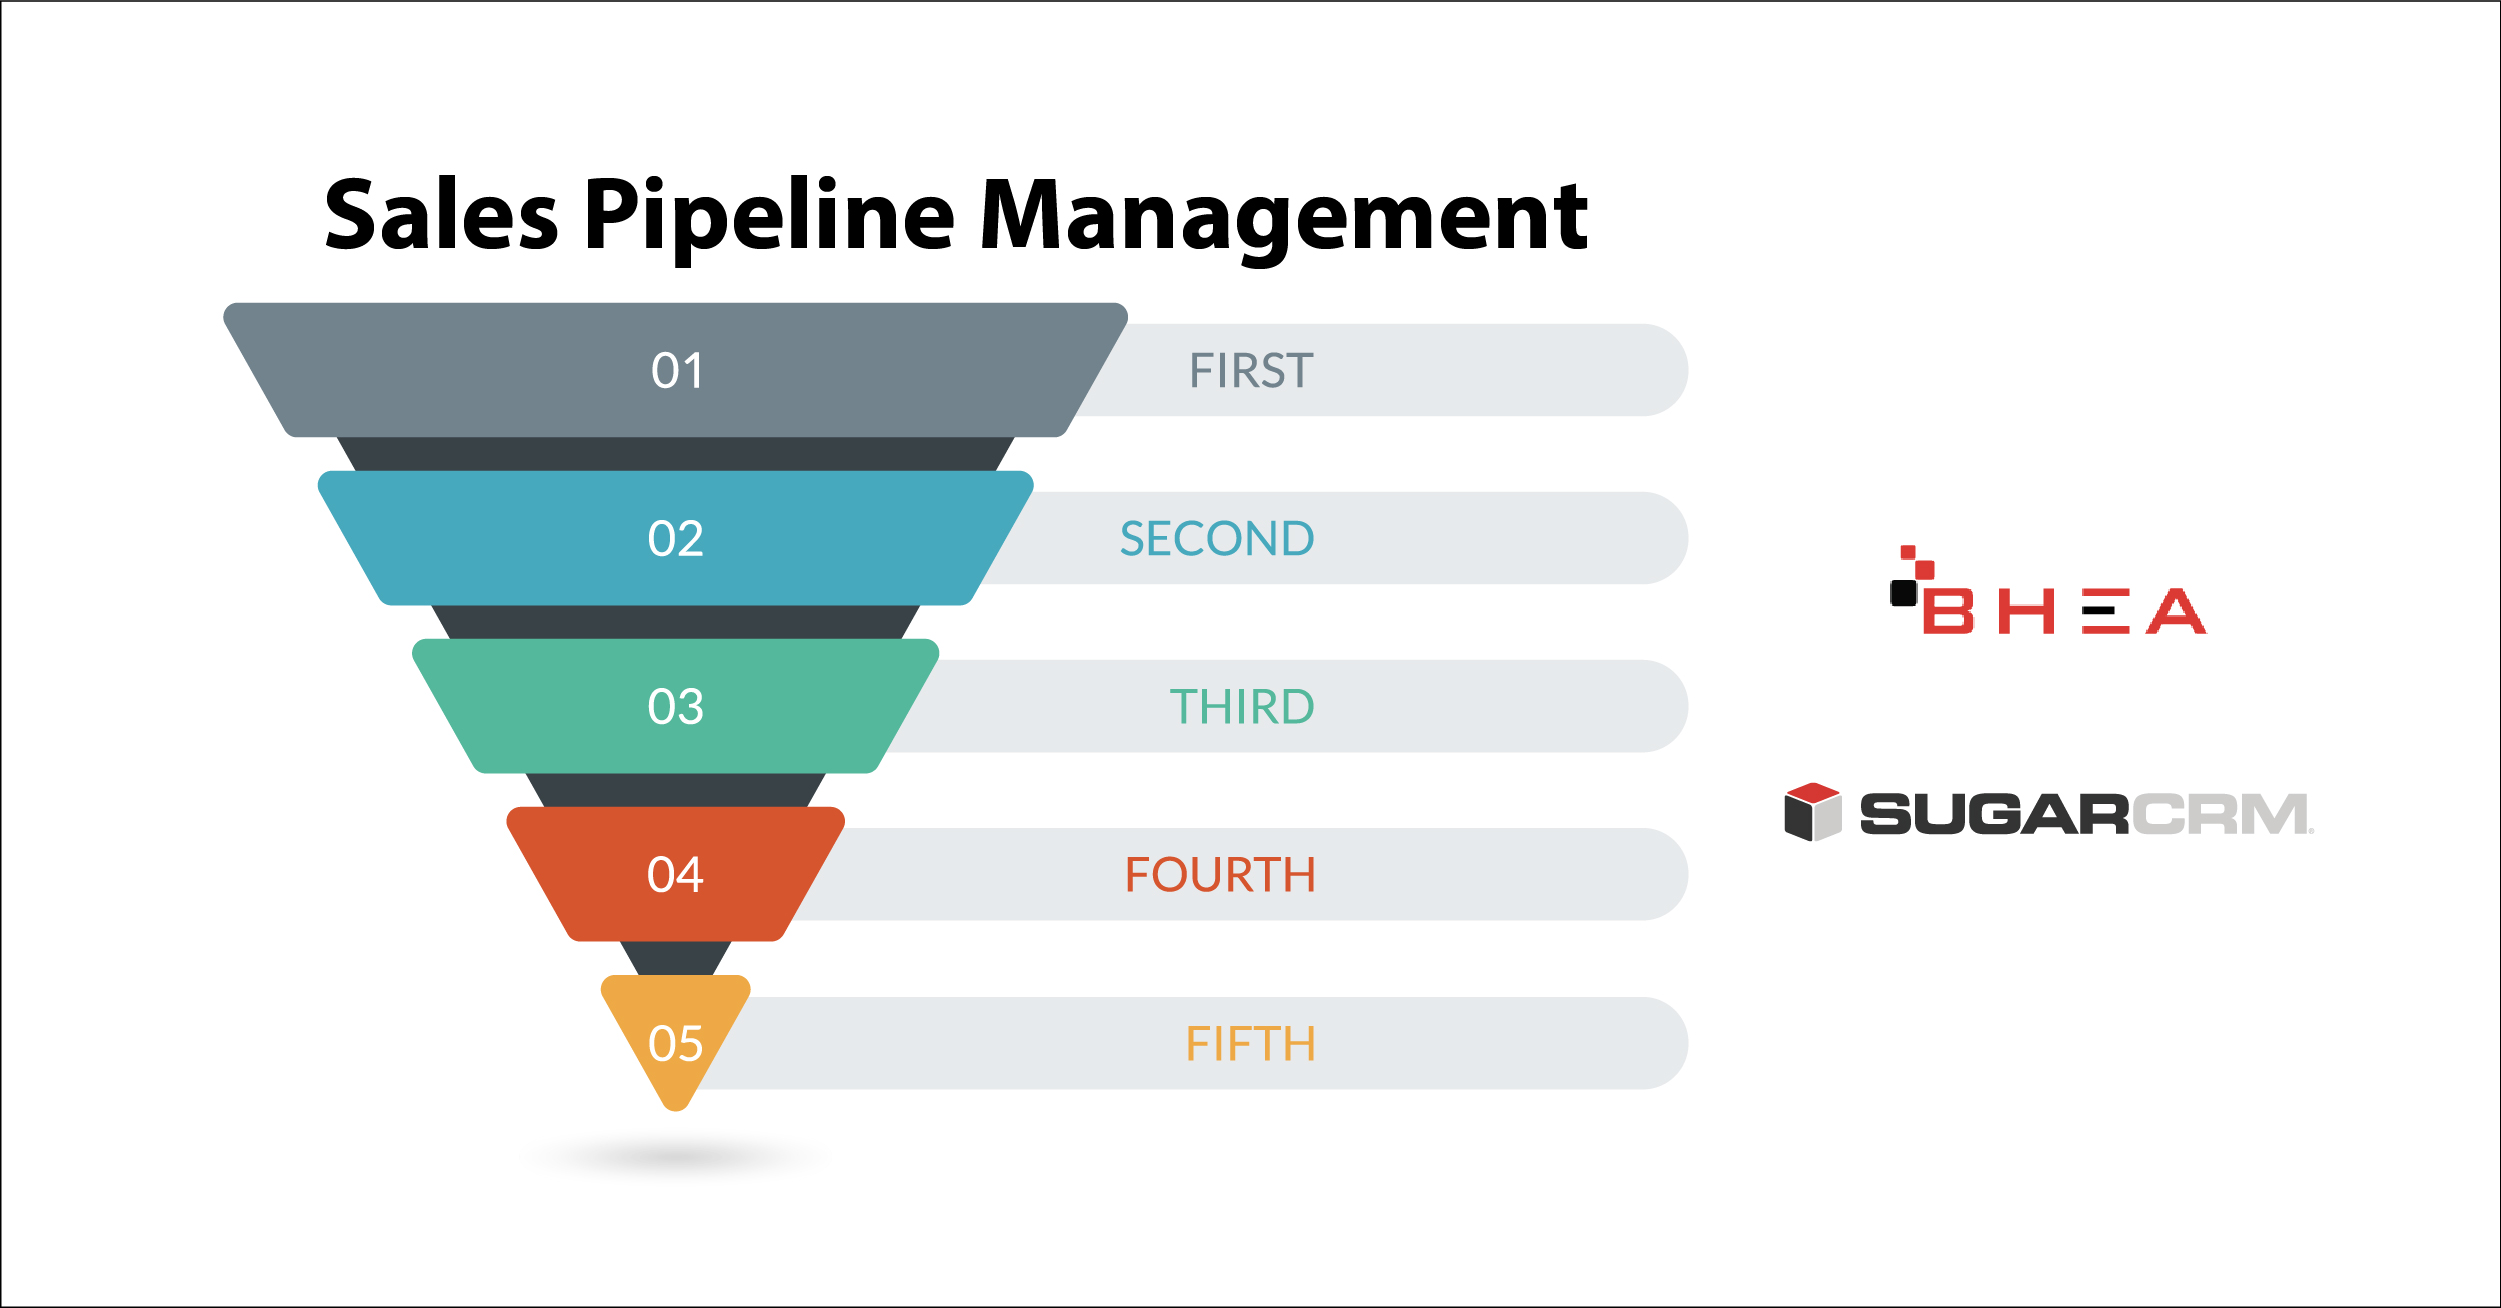 Sugarcrm system time